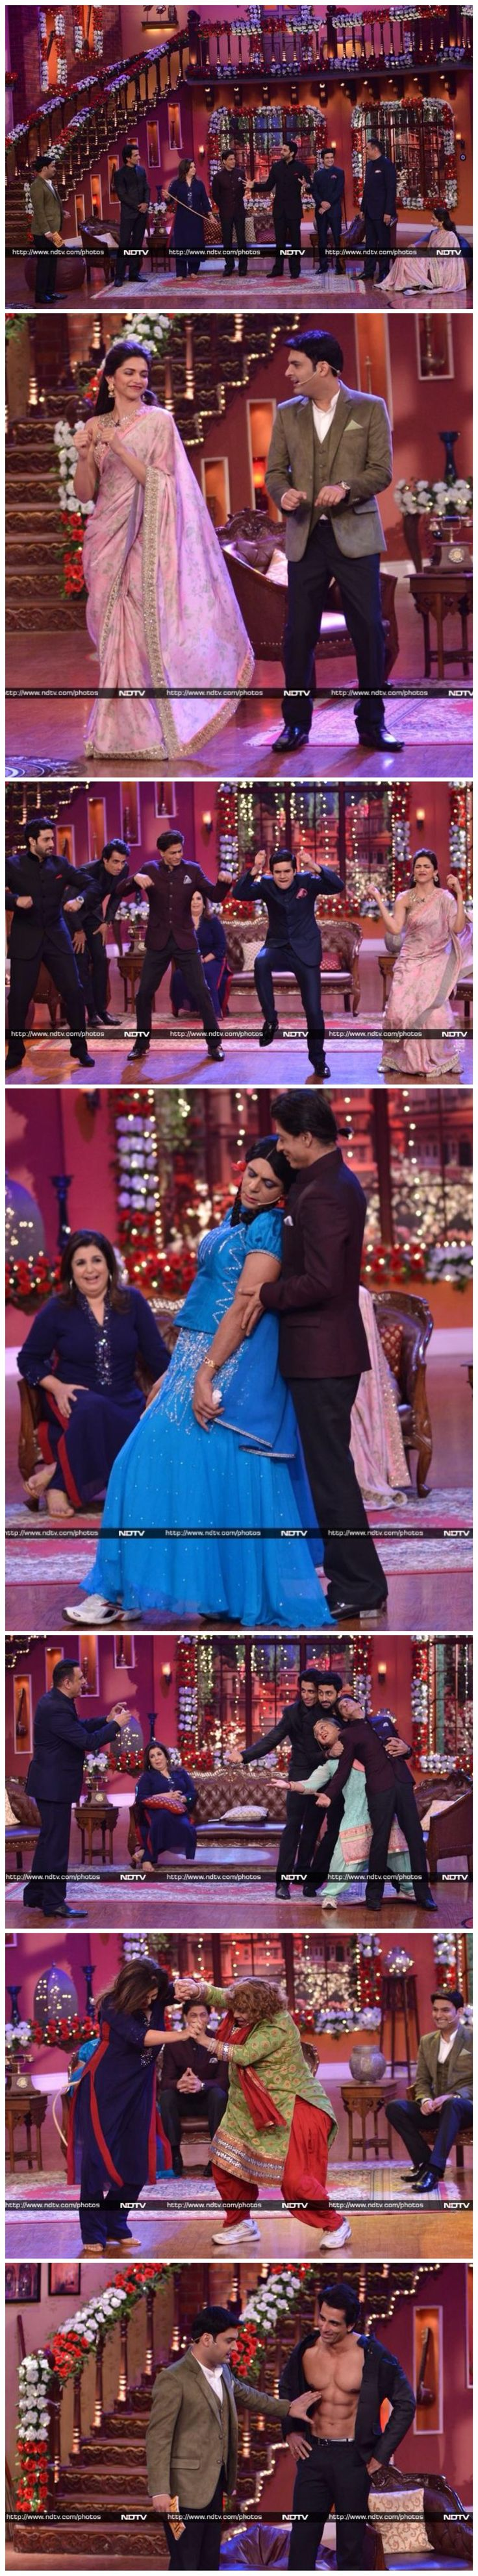 "The ""Happy New Year"" team visited the sets of Kapil Sharma's comedy show ""Comedy Nights with Kapil"". Shah Rukh Khan, Deepika Padukone, Abhishek Bachchan, Boman Irani, Sonu Sood and Vivaan Shah came on the show along with director Farah Khan."